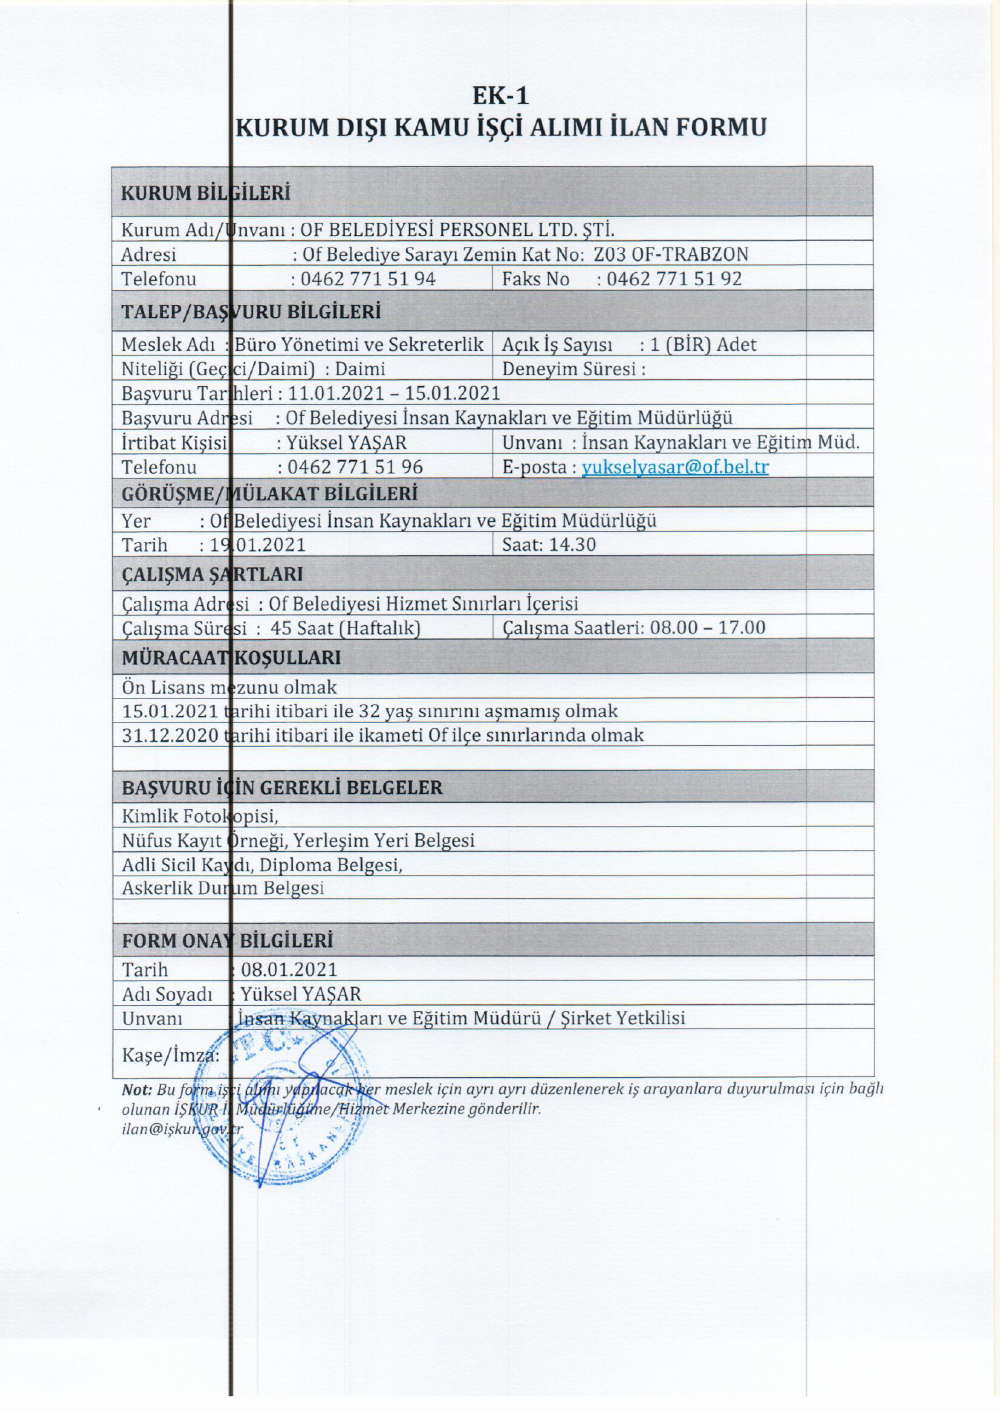 trabzon-of-belediyesi-personel-limited-sirketi-15-01-2021-000002.png